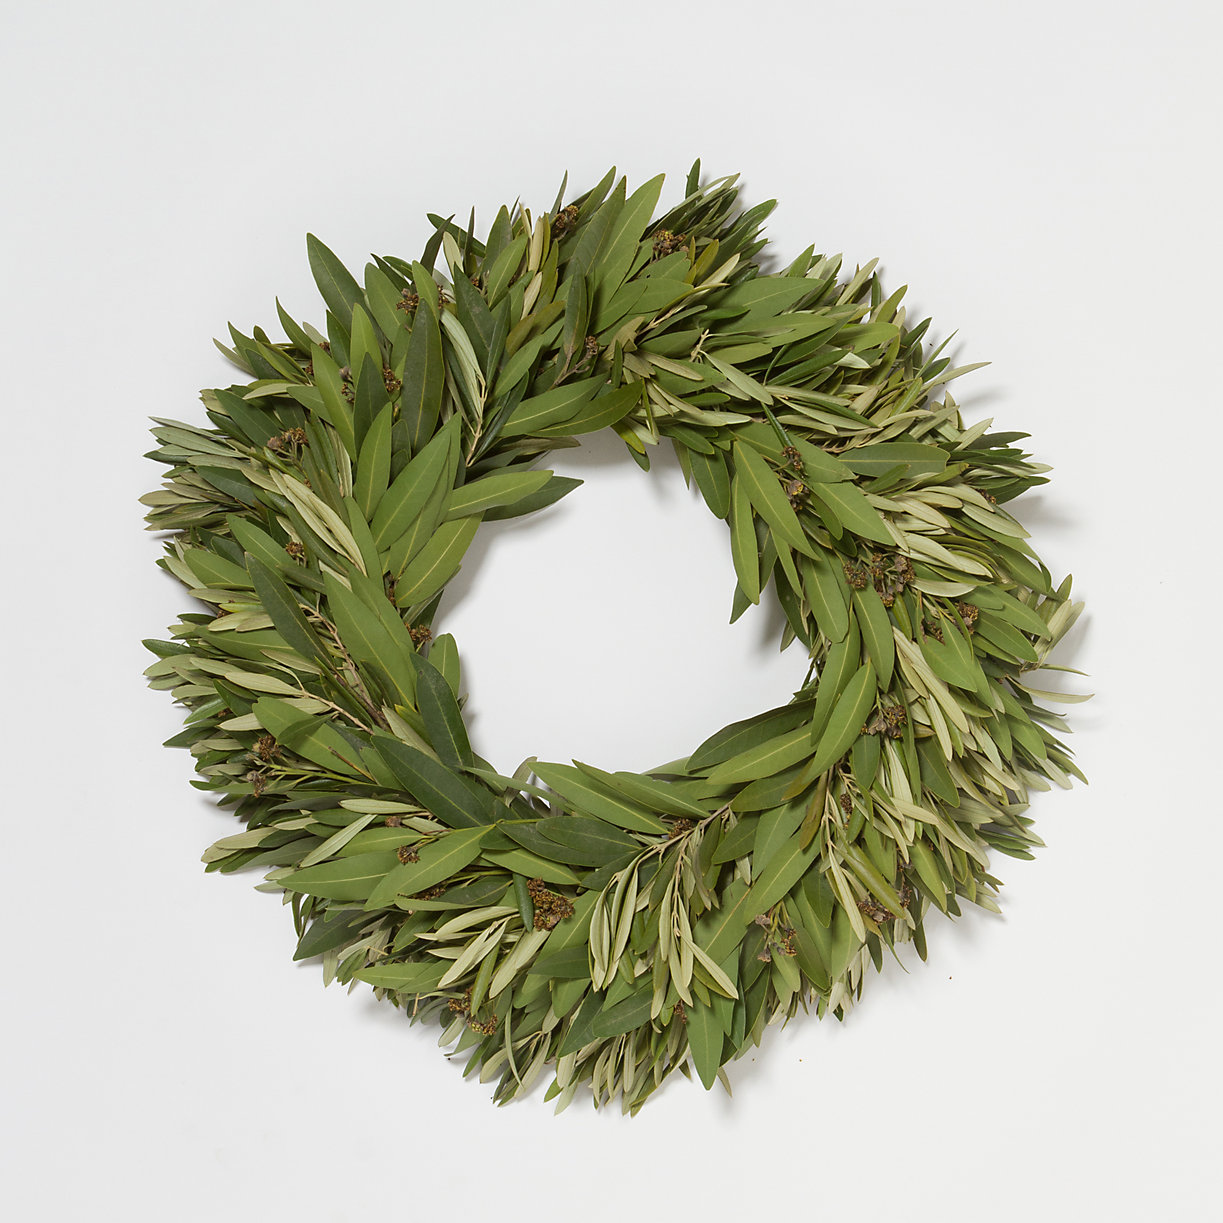 Bay and olive wreath from Terrain